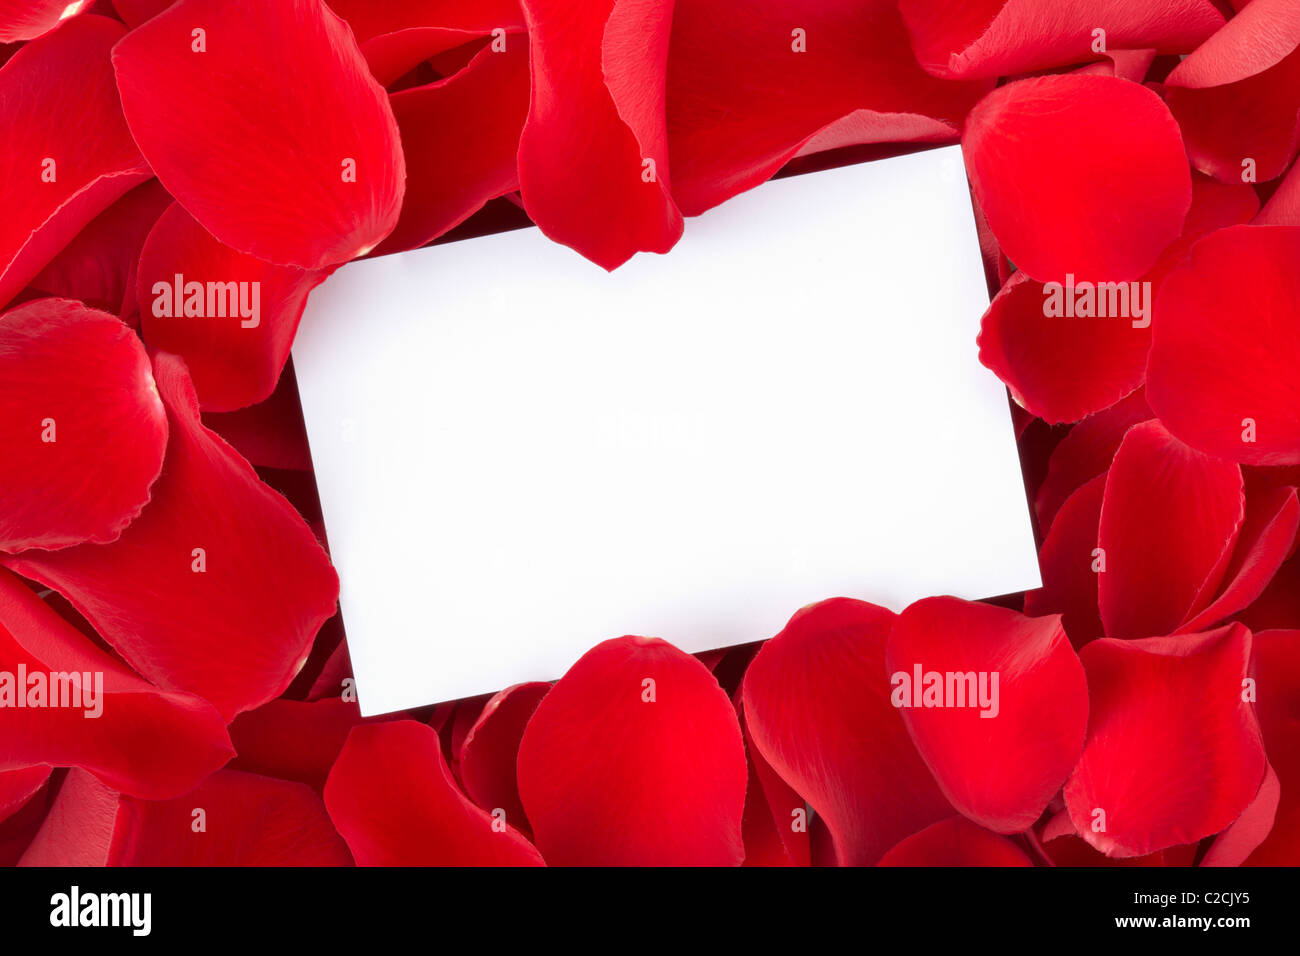 Red rose petals with blank card - Stock Image